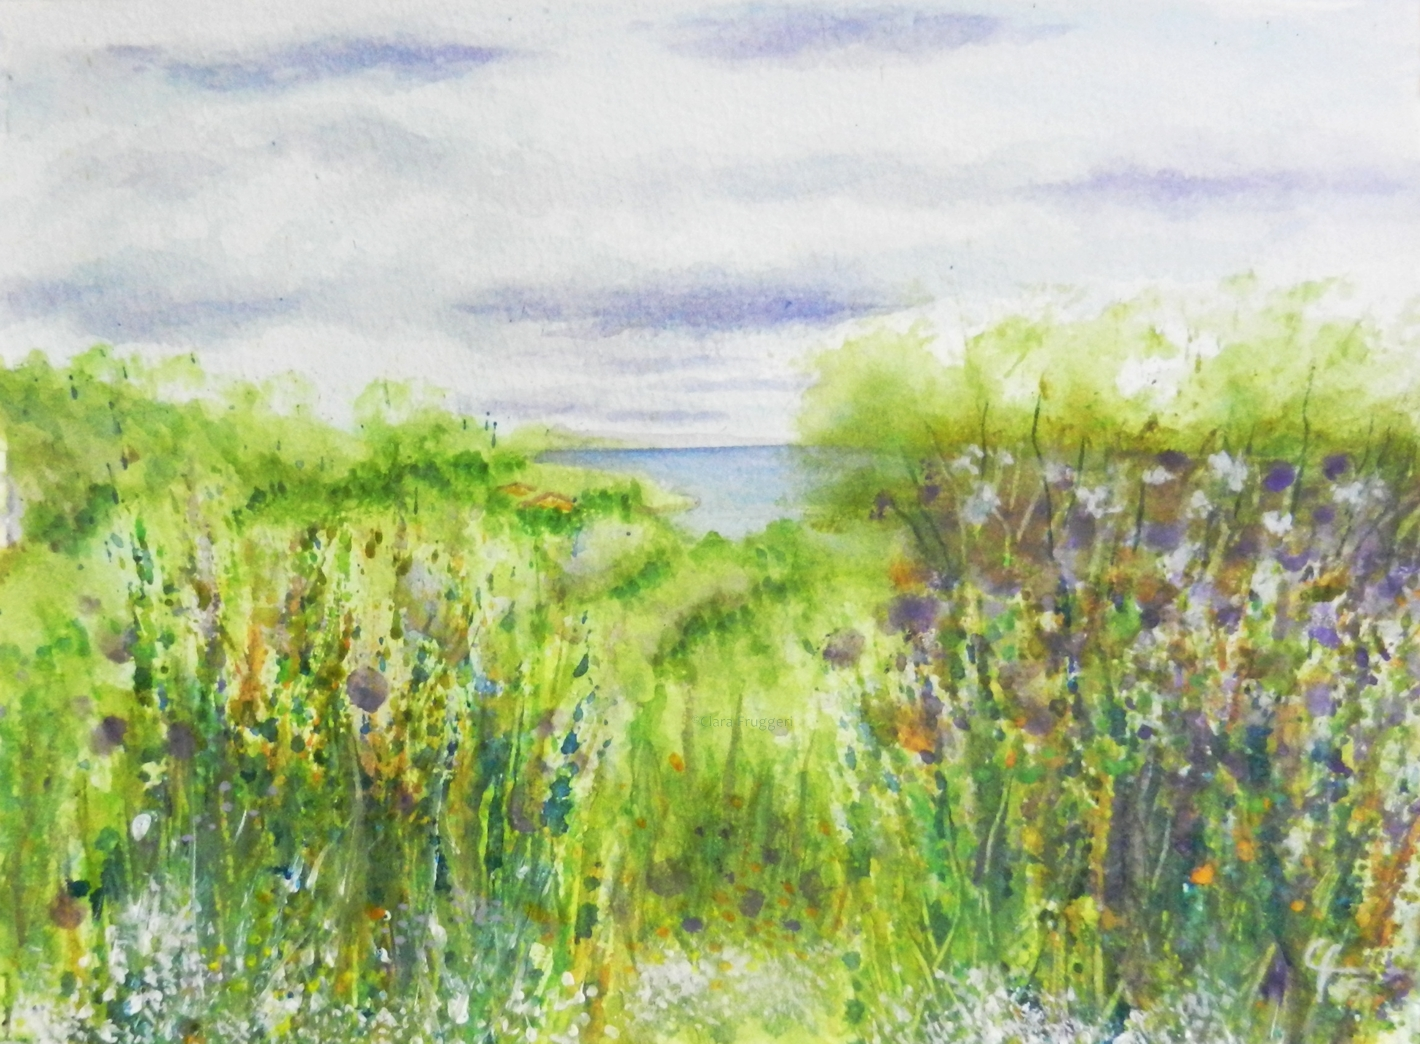 A view of the sea, Una vista del mare,  Watercolor, Painting, Nature, Landscape, Clara Fruggeri